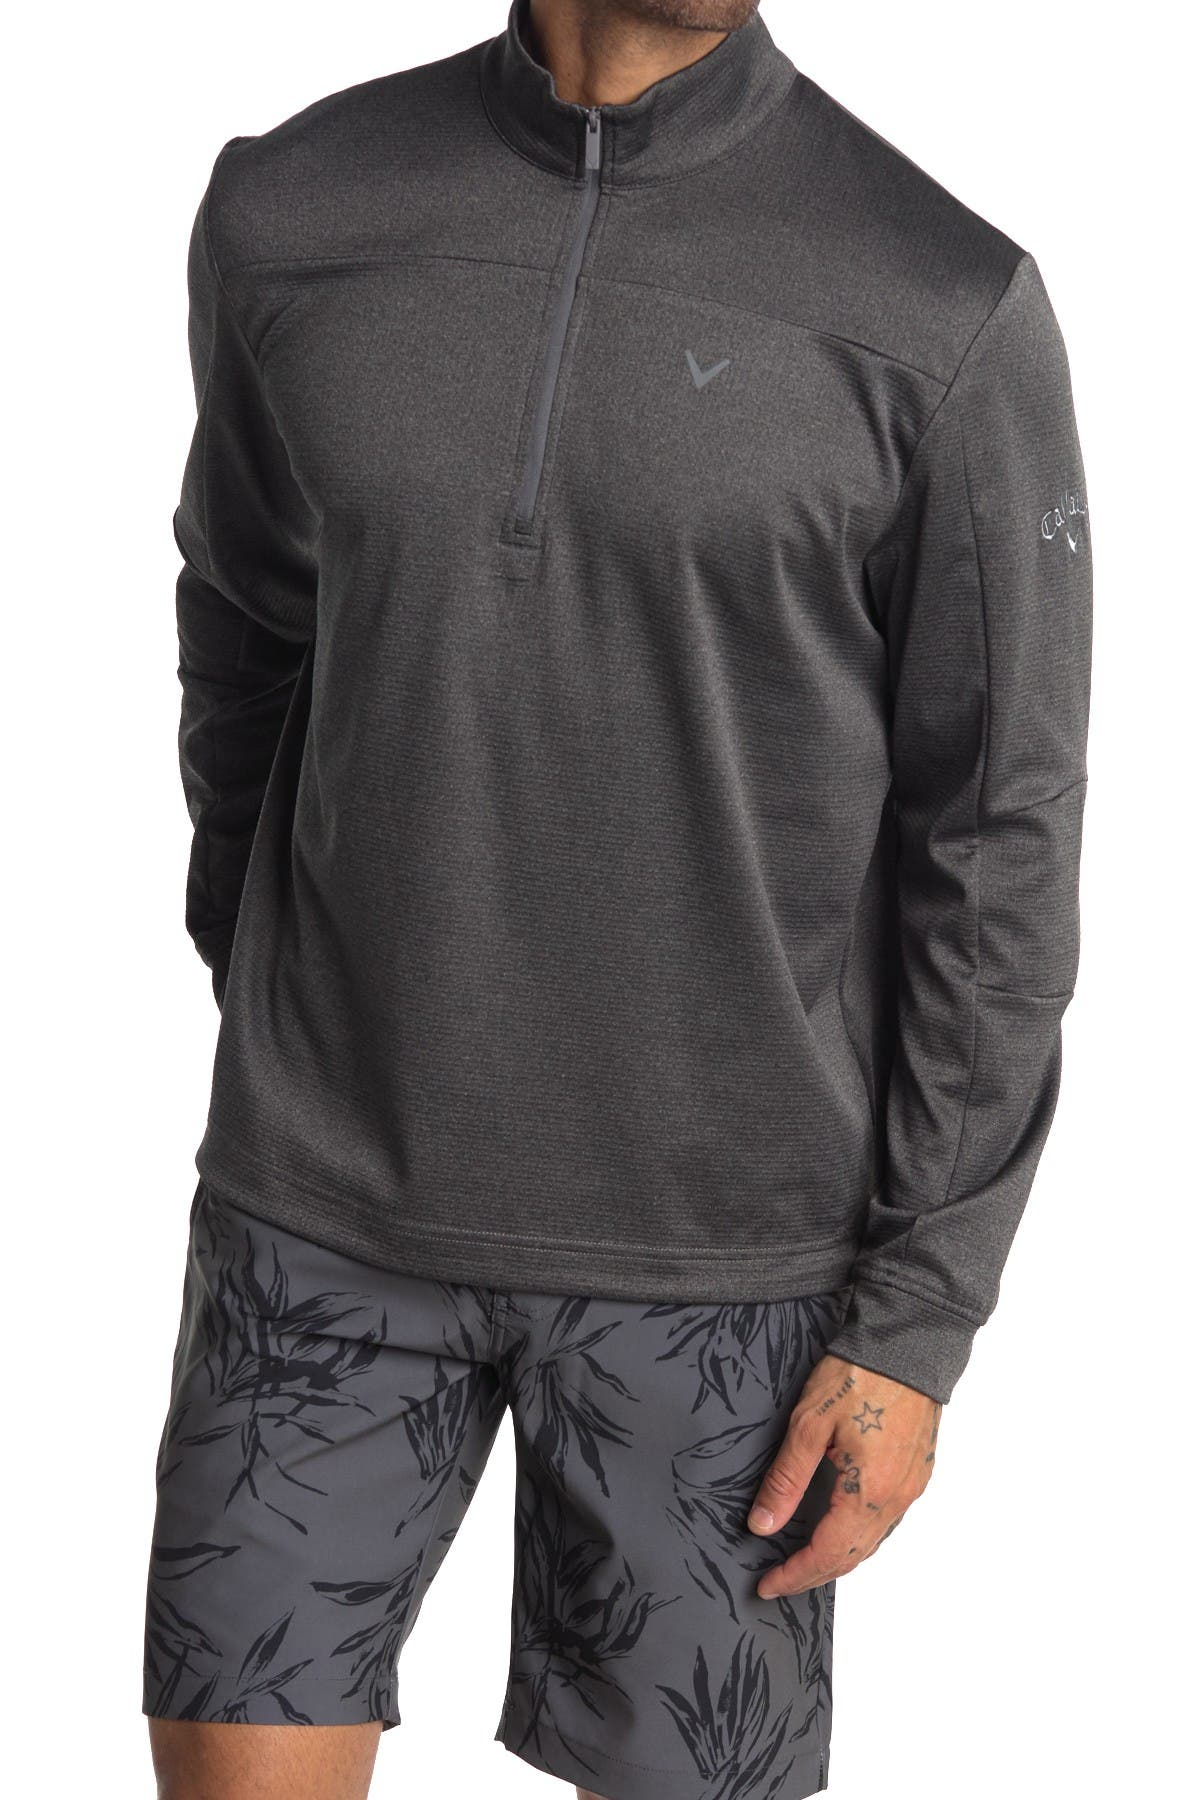 Image of CALLAWAY GOLF Quarter Zip Waffle Knit Sweater